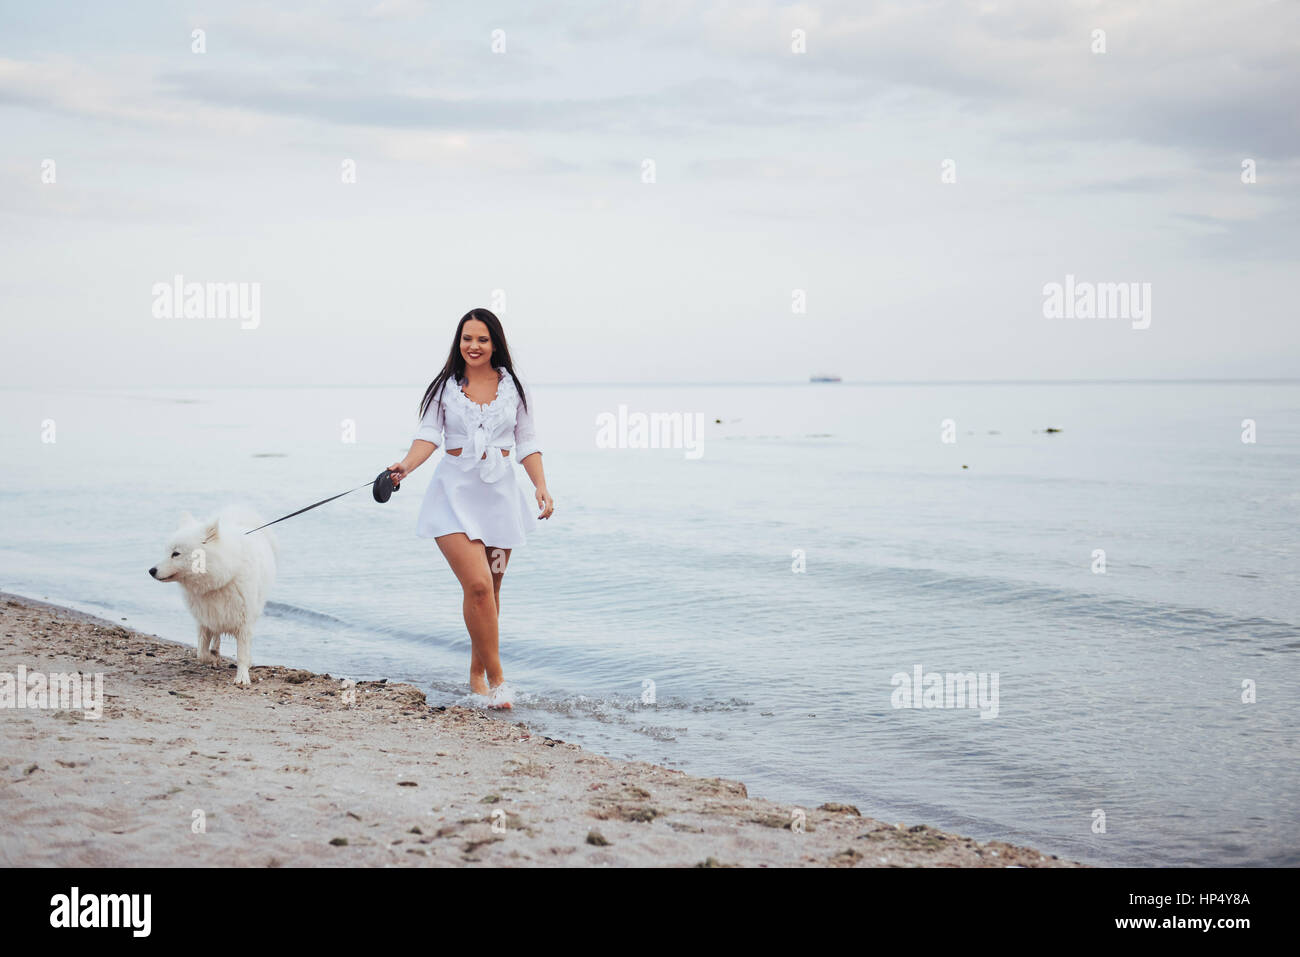 Beautiful brunette woman on the beach with a dog walking - Stock Image